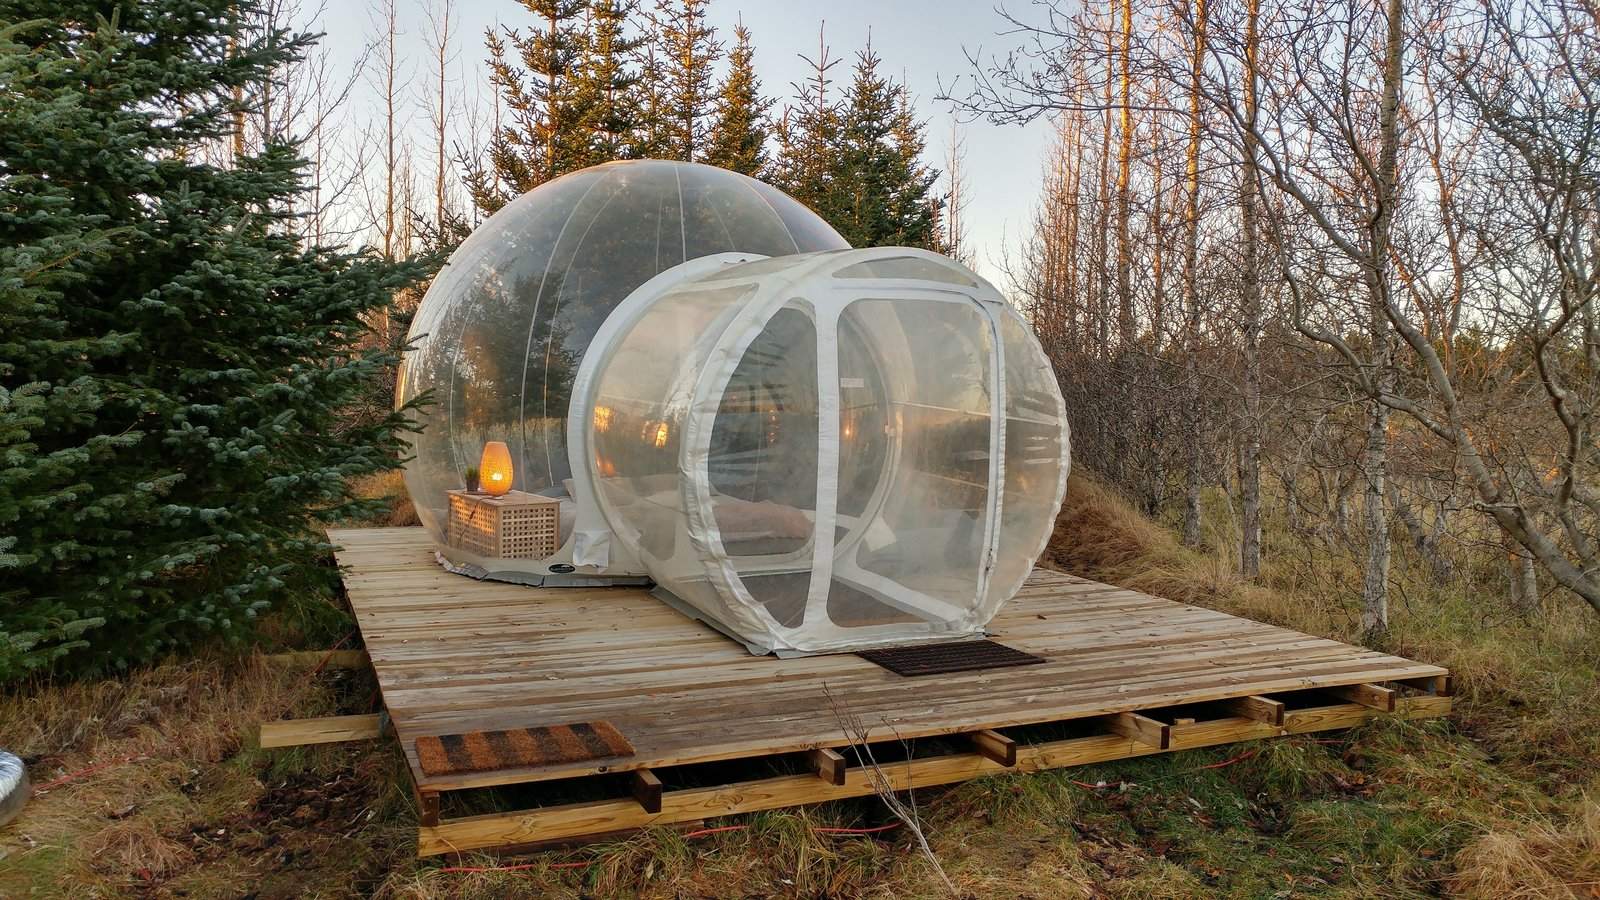 Exterior, Tent Building Type, Dome RoofLine, and Cabin Building Type Smaller bubbles come with a round bed that sleeps two, while the larger units have a double bed. Guests share a wood-clad outbuilding that holds the restroom, showers, and kitchen. Adventurers can also book the Golden Circle Tour through Buubble, exploring Thingvellir National Park, the Geysir hot springs, Gullfoss waterfall, and the Secret Lagoon before spending a night at the hotel.  Best Photos from Sleep Under the Northern Lights in an Icelandic Bubble Hotel